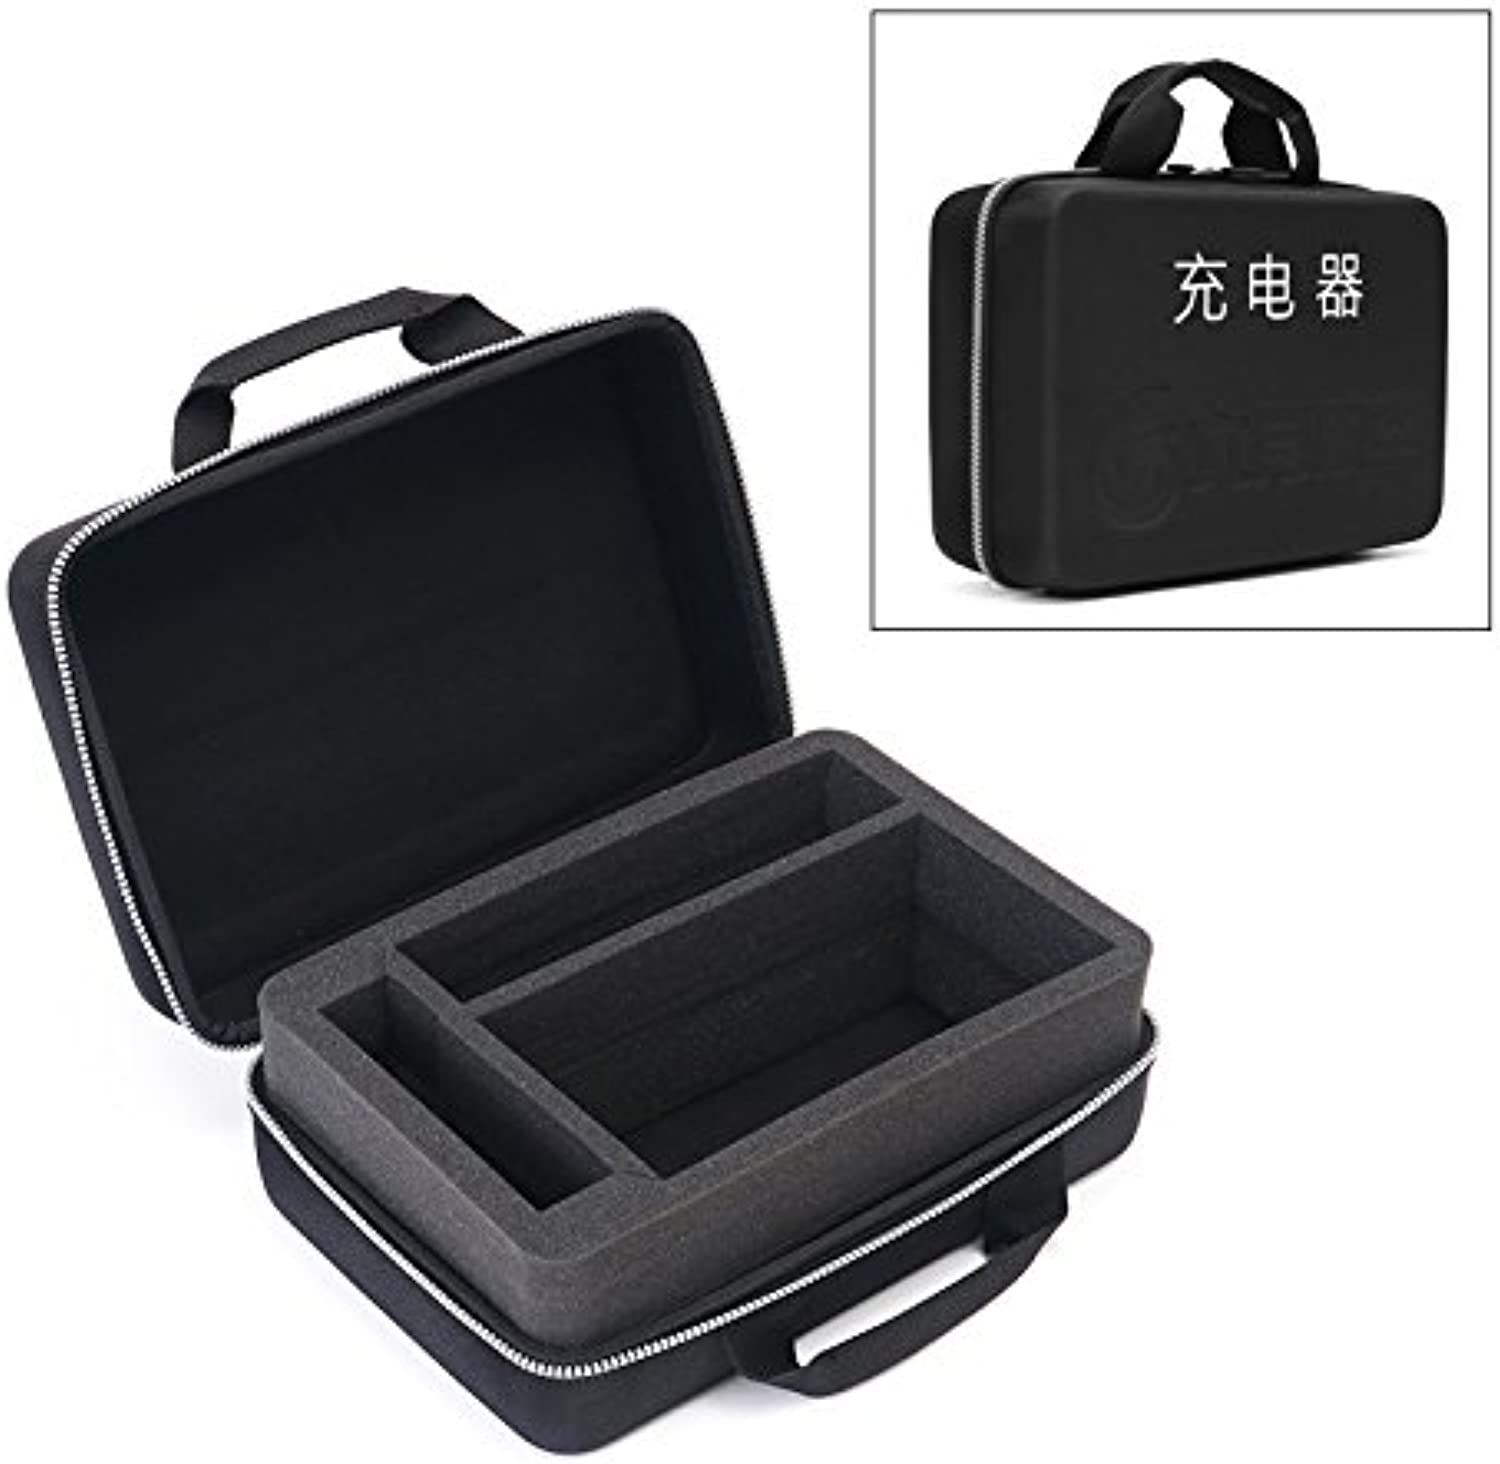 HITSAN RC Battery Charger Waterproof Box Case Bag 332311cm for RC Charger One Piece